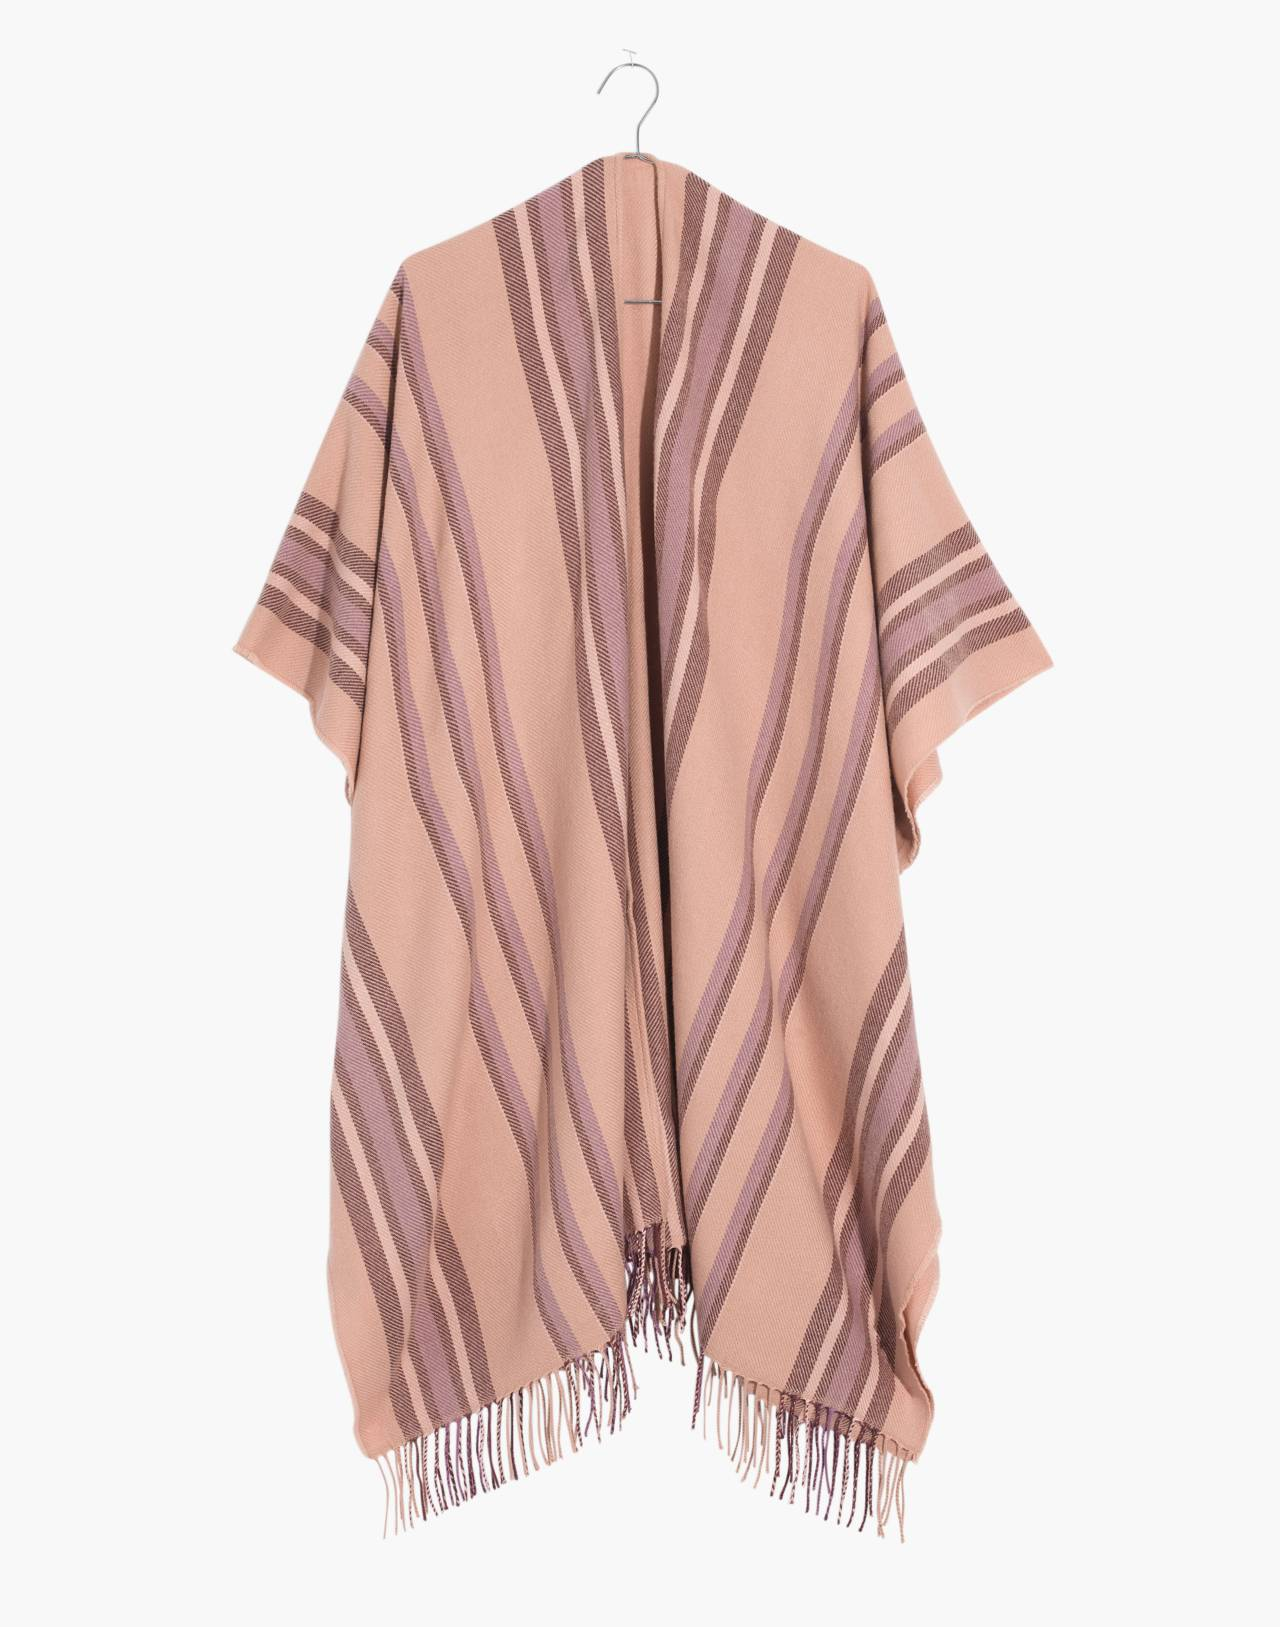 Placed Stripe Poncho Scarf in desert camel multi image 1